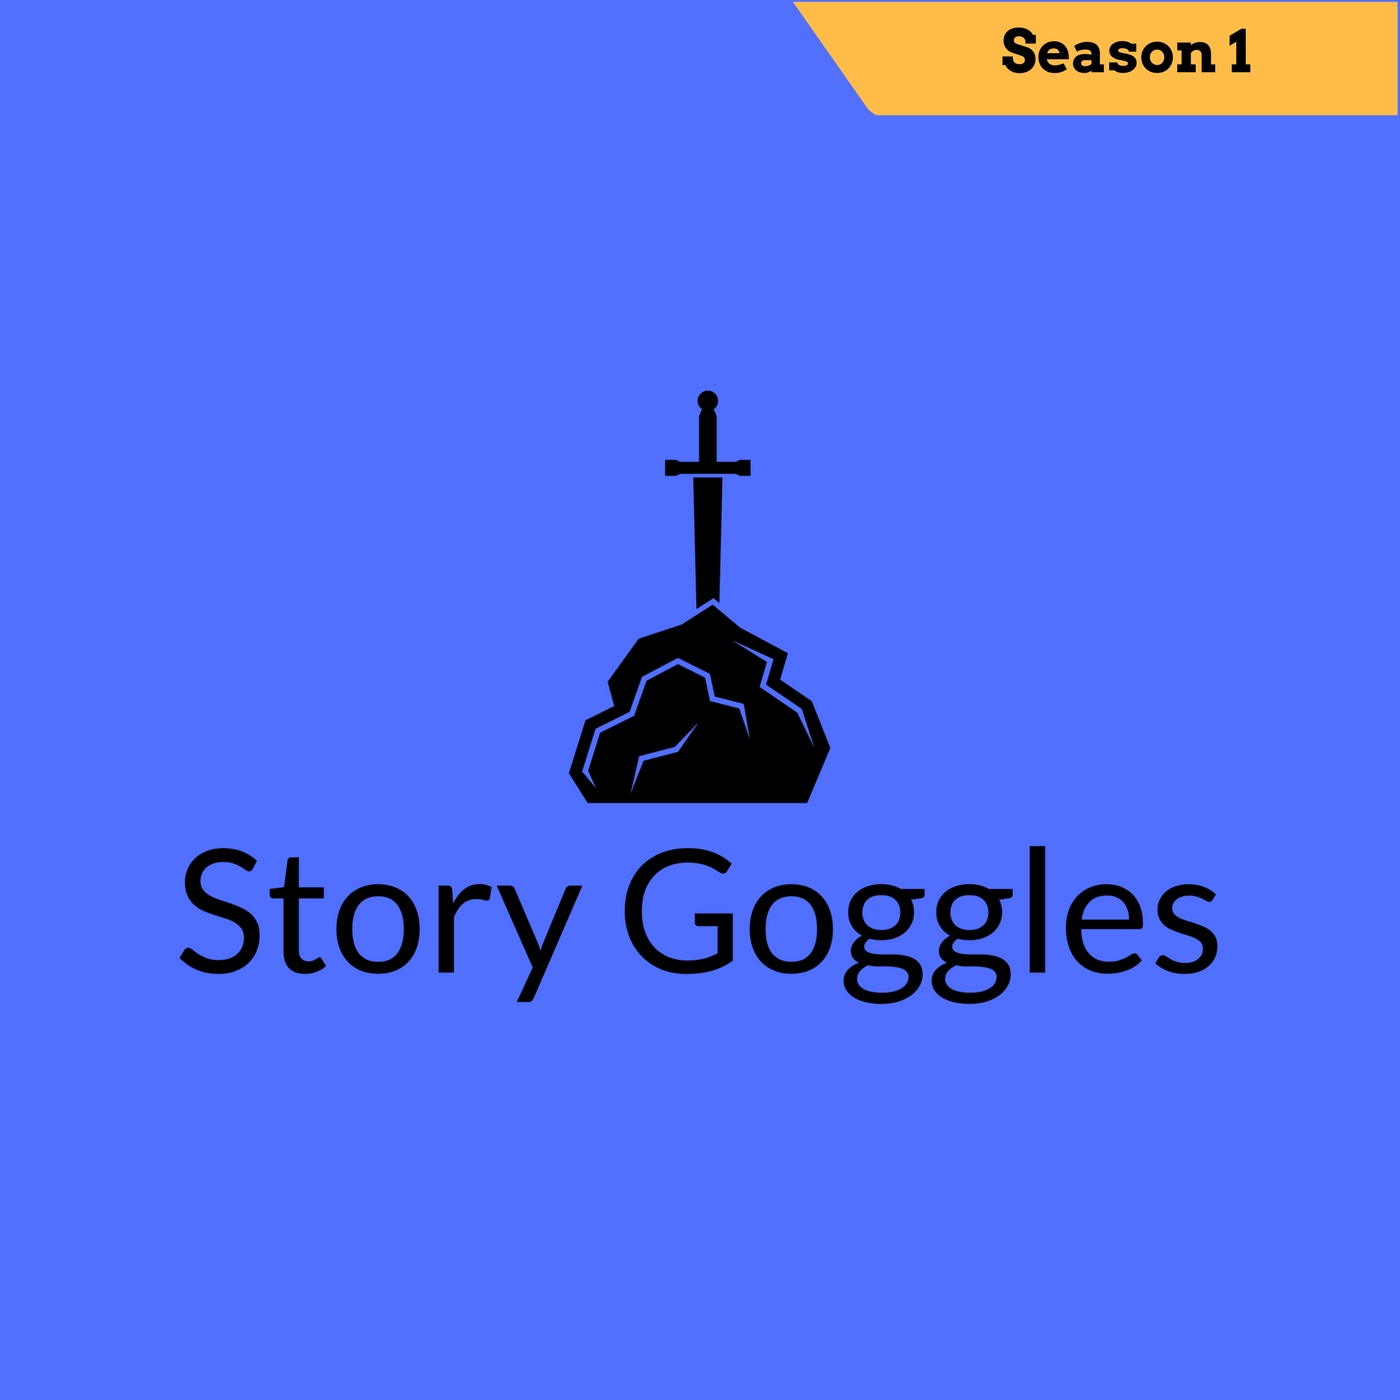 Story Goggles